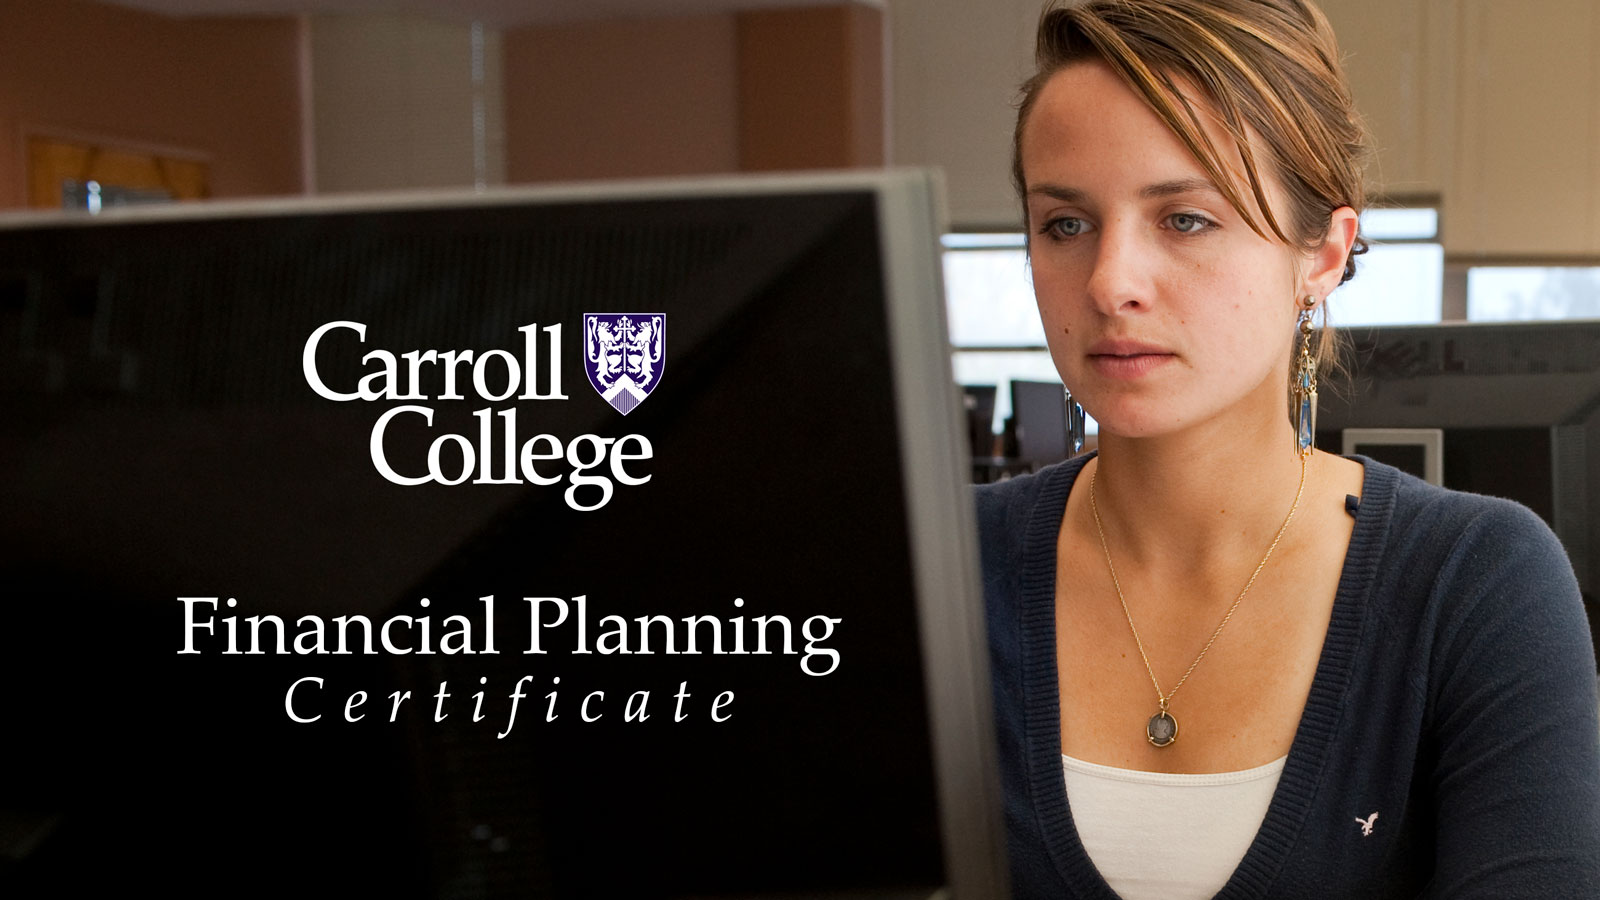 Financial Planning Certificate graphic